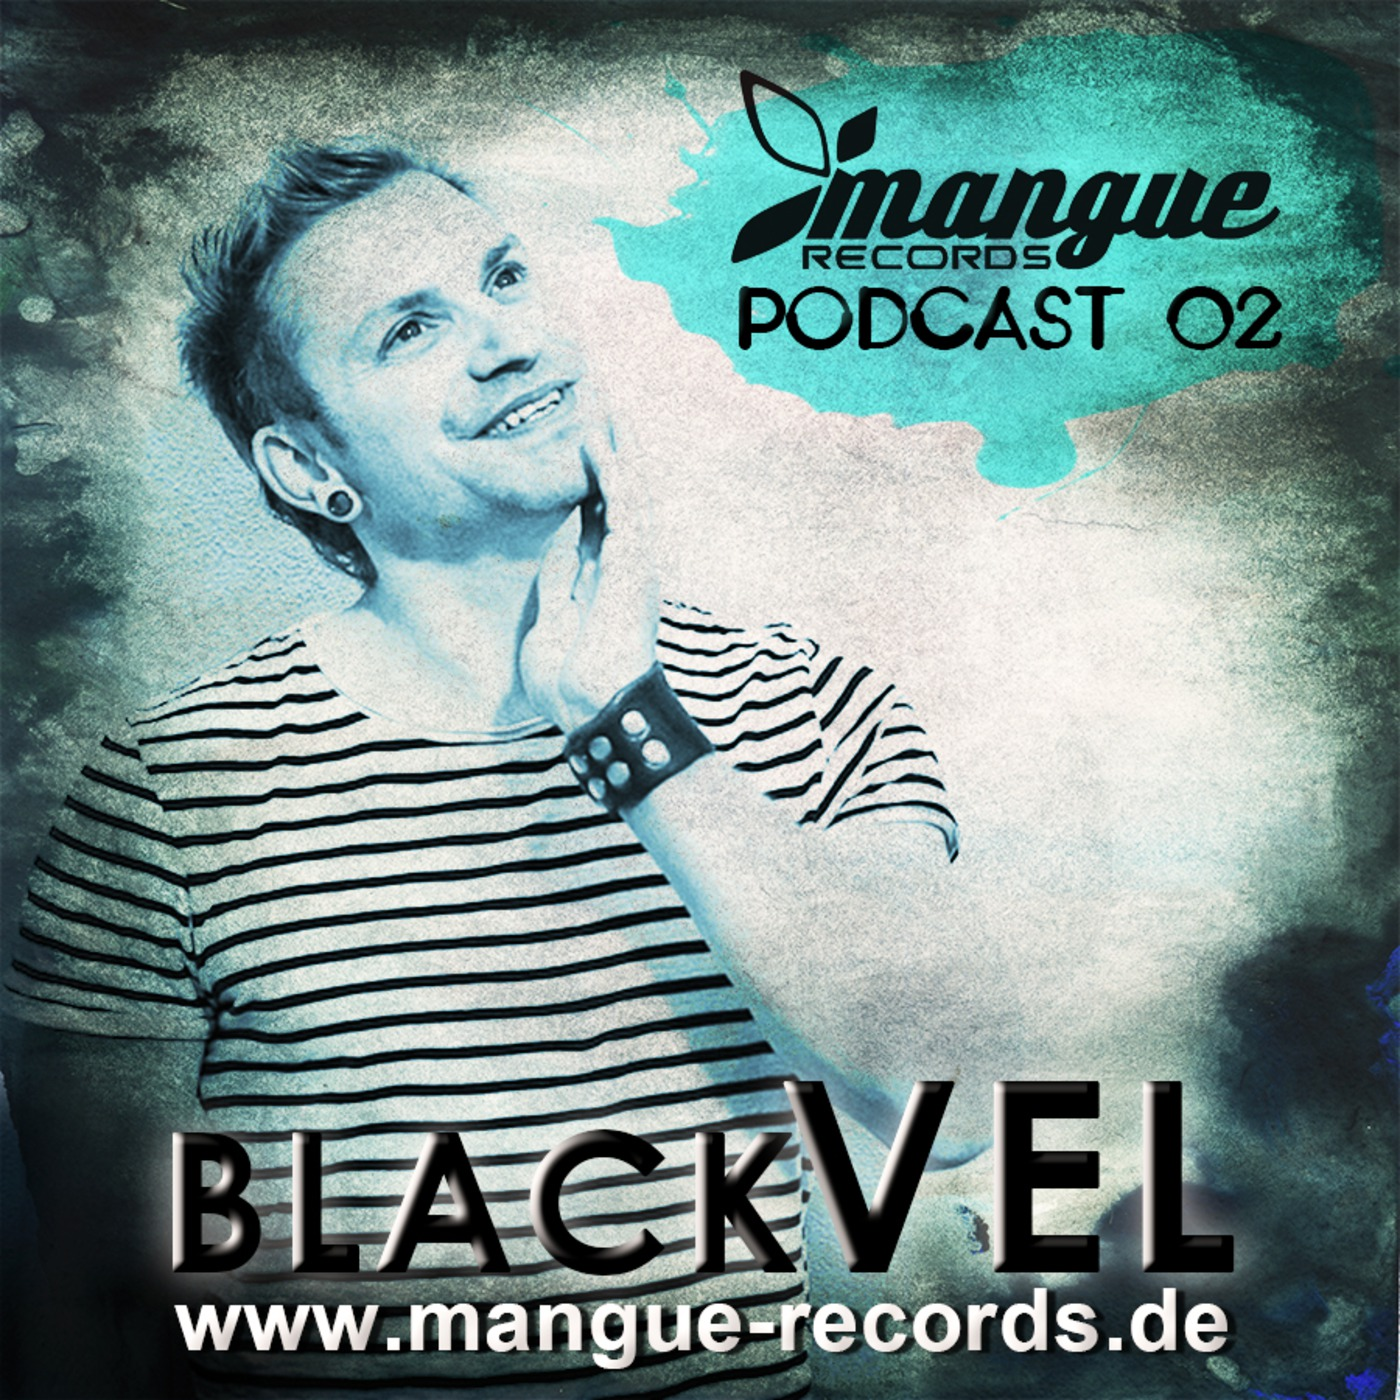 Mangue Records' Podcast